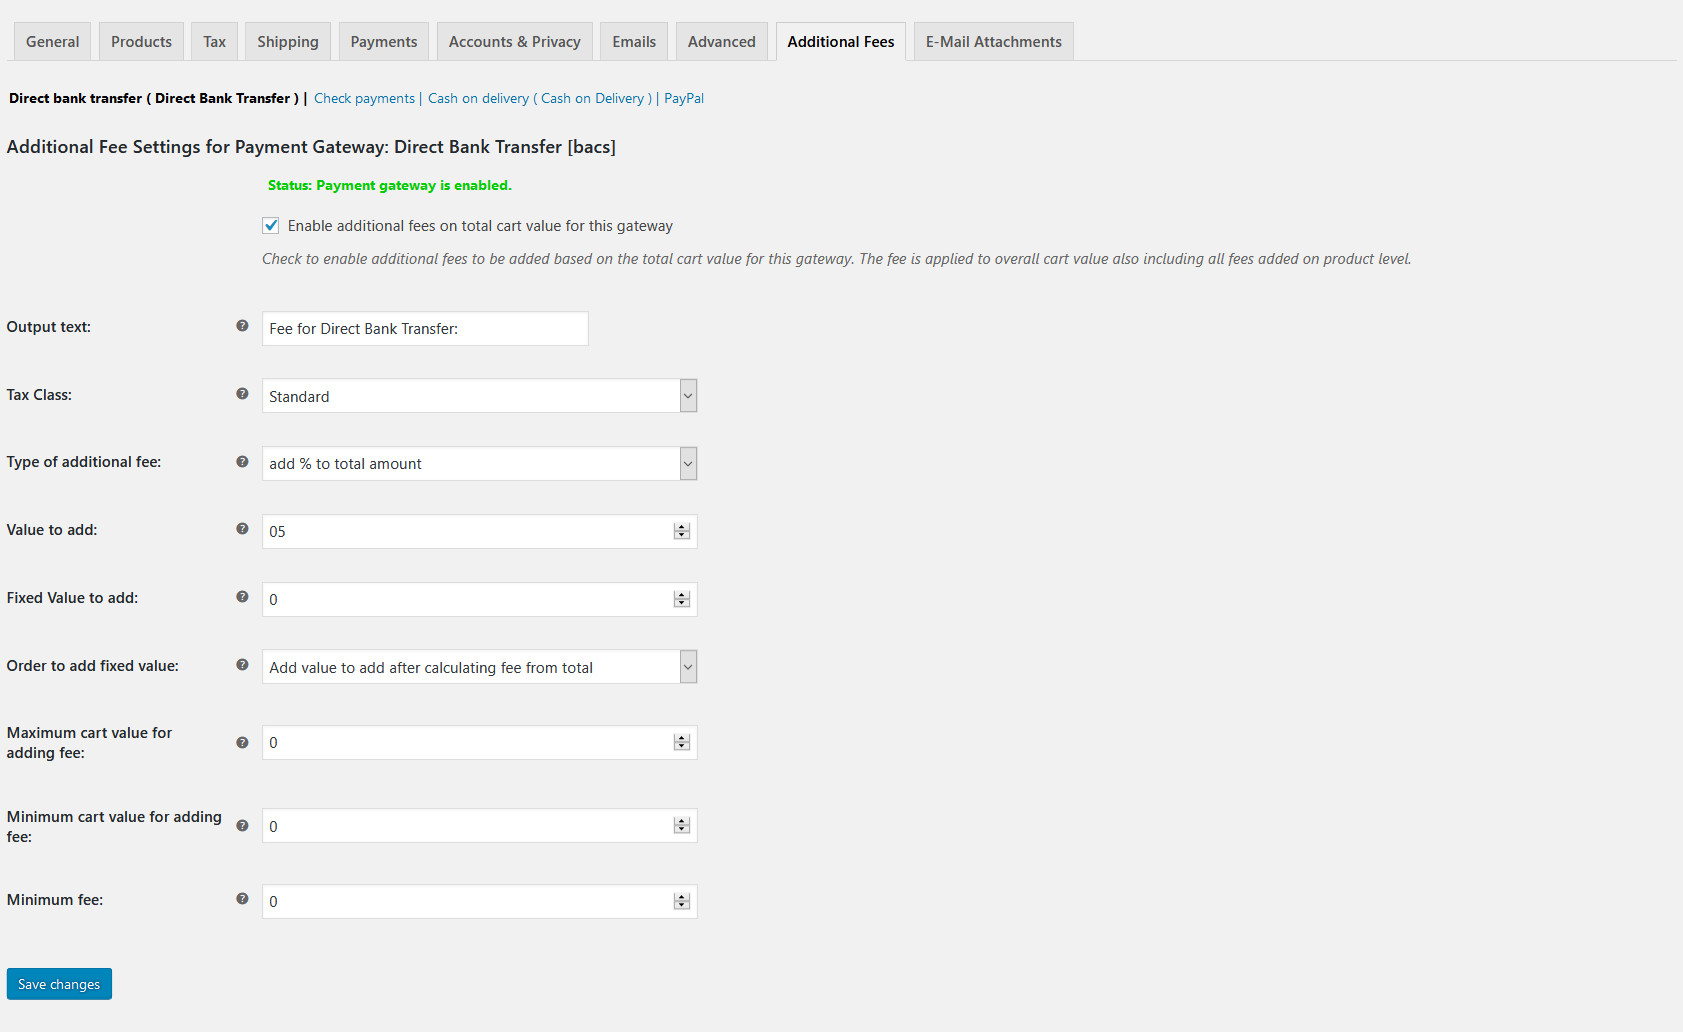 Screenshot of the Payment Gateway Based Fees admin/settings page